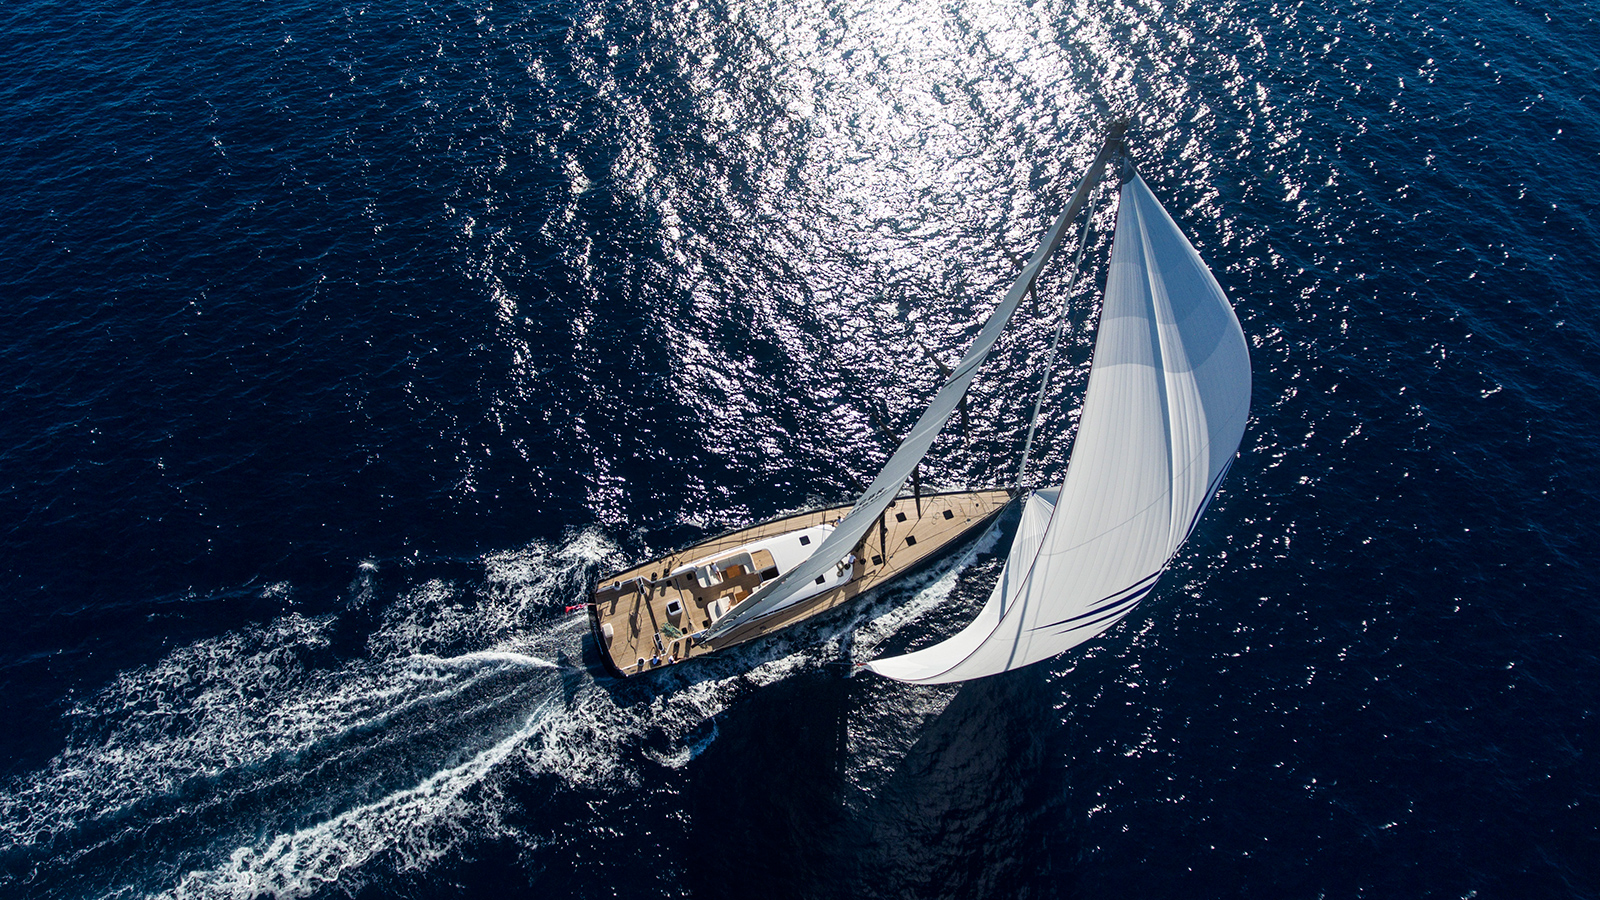 aerial-view-of-the-nautors-swan-115-fd-sailing-yacht-shamanna